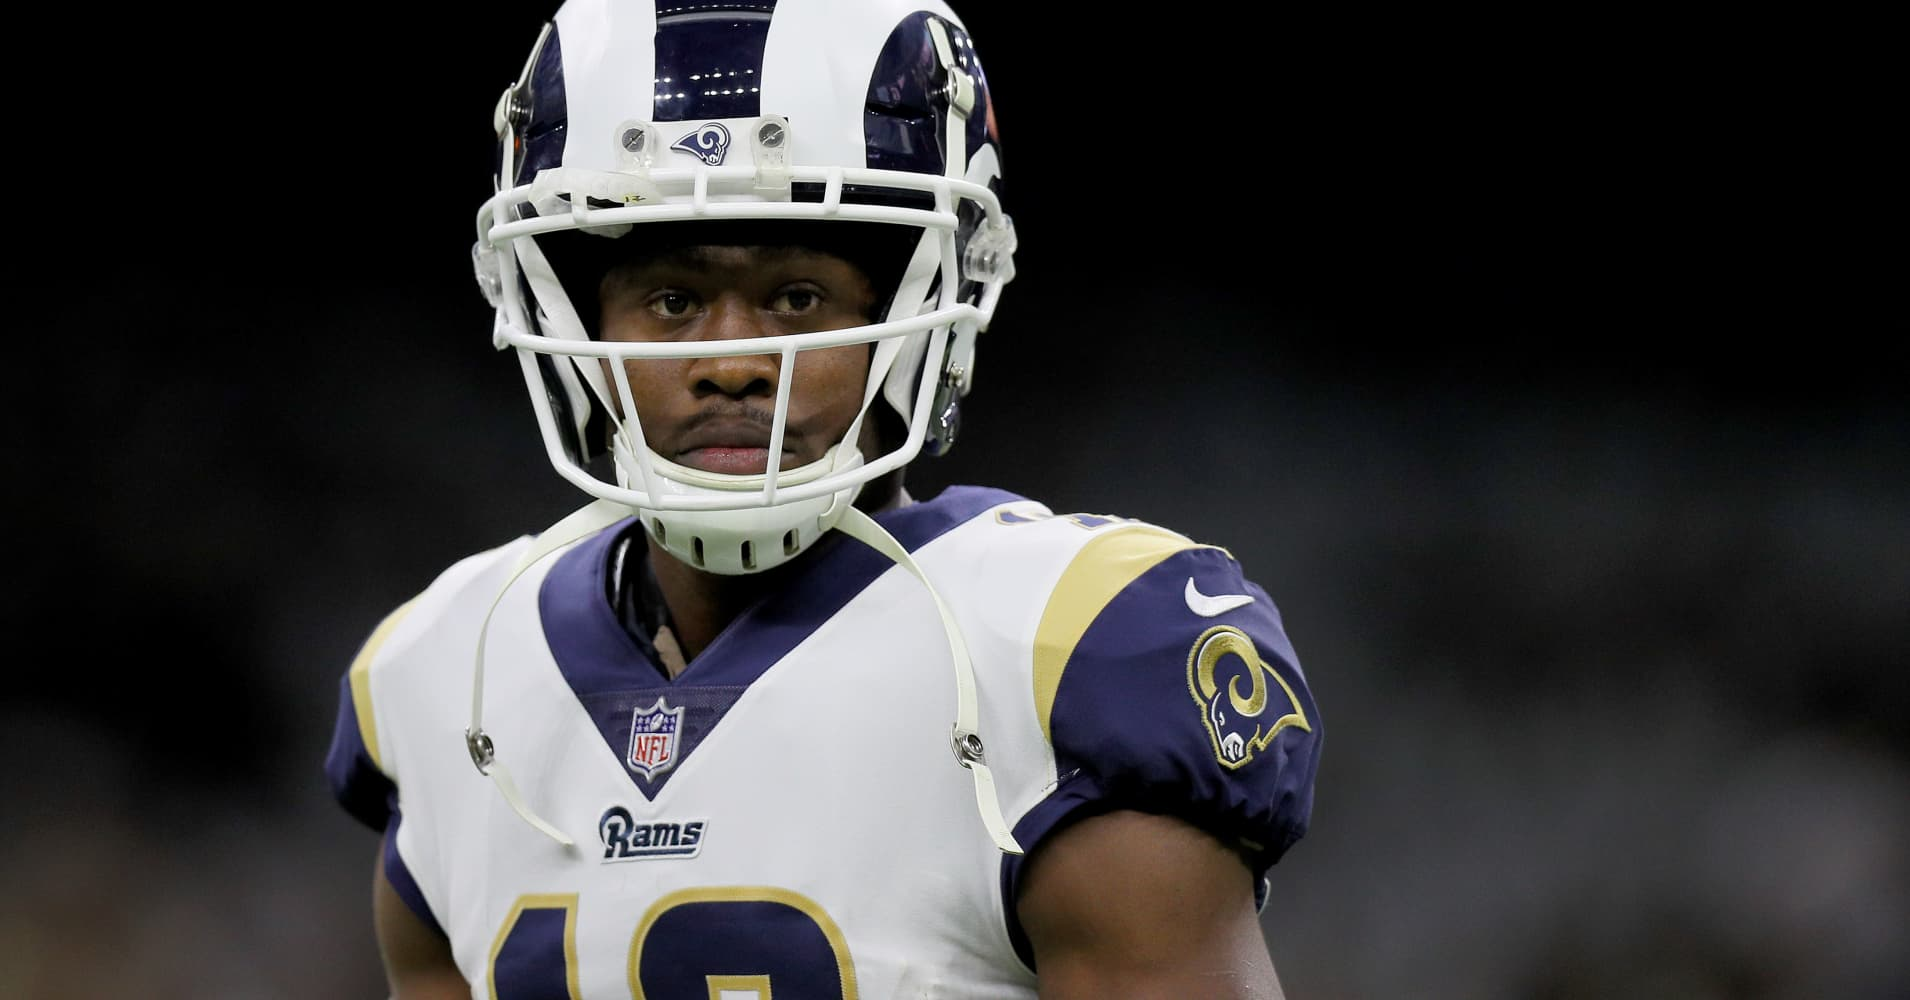 Brandin Cooks #12 of the Los Angeles Rams is seen on the field before taking on the New Orleans Saints in the NFC Championship game at the Mercedes-Benz Superdome on January 20, 2019 in New Orleans, Louisiana.